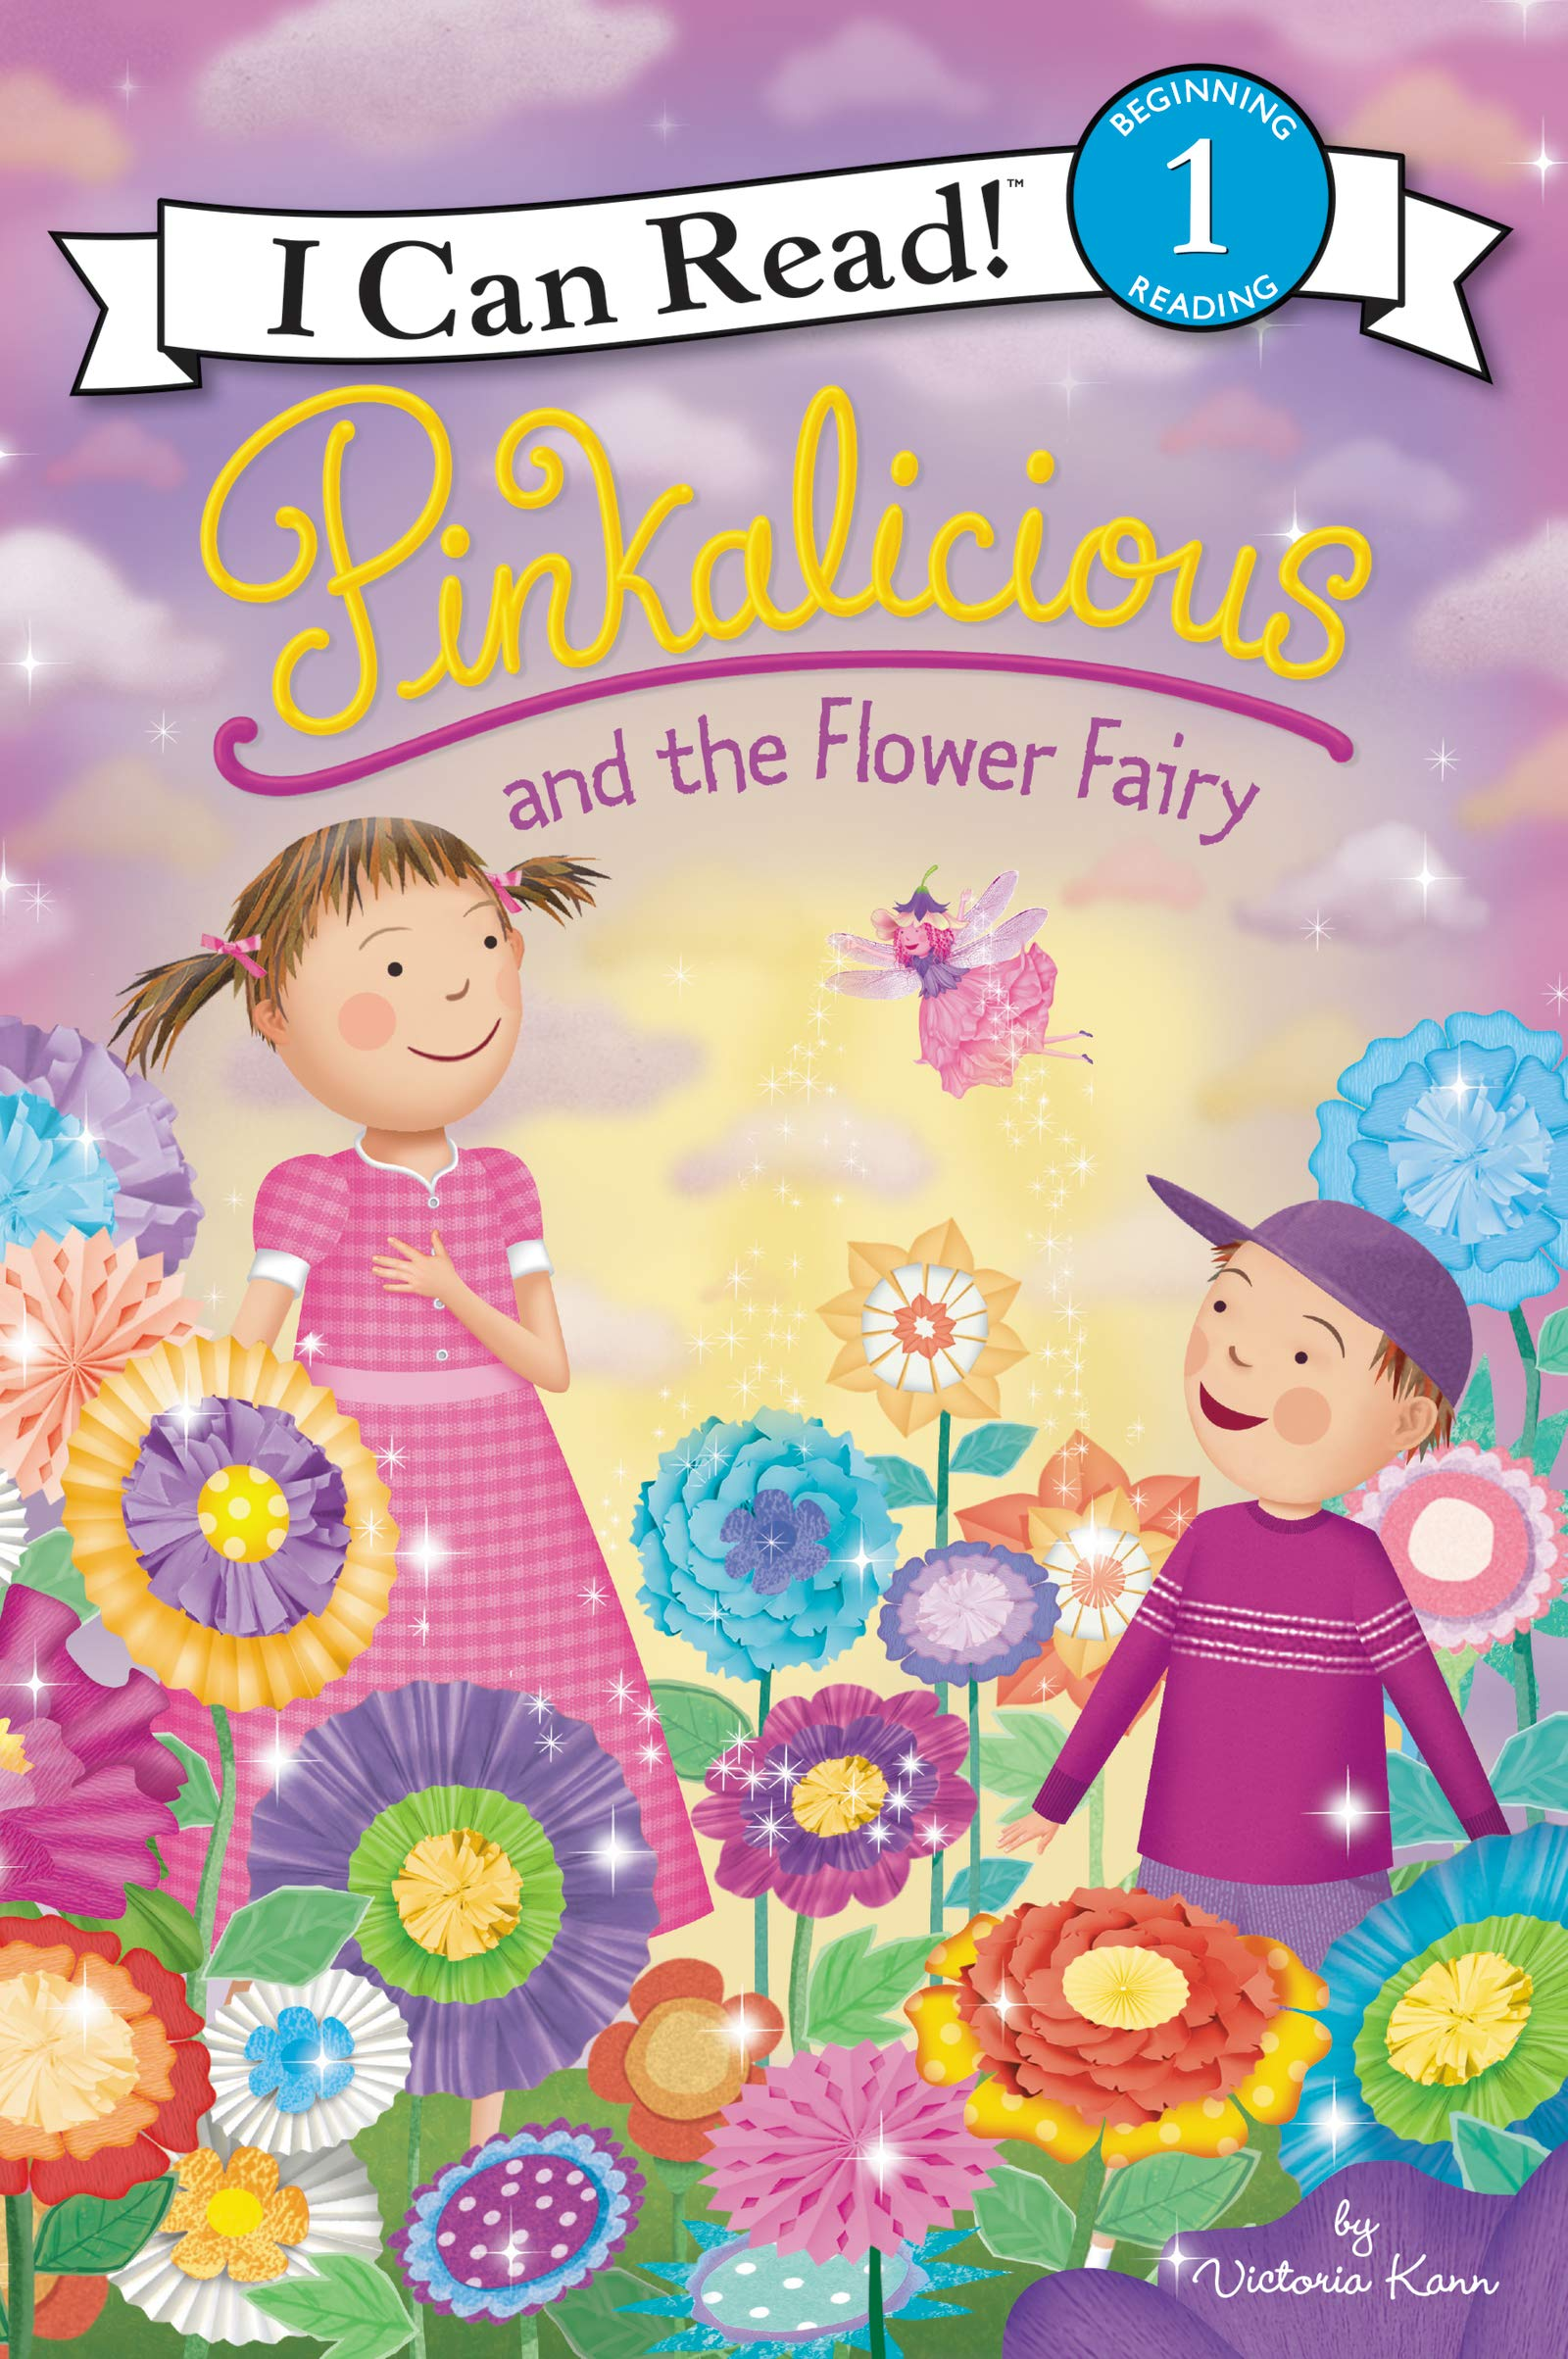 Amazon.com: Pinkalicious and the Flower Fairy (I Can Read Level 1) (9780062567017): Kann, Victoria, Kann, Victoria: Books